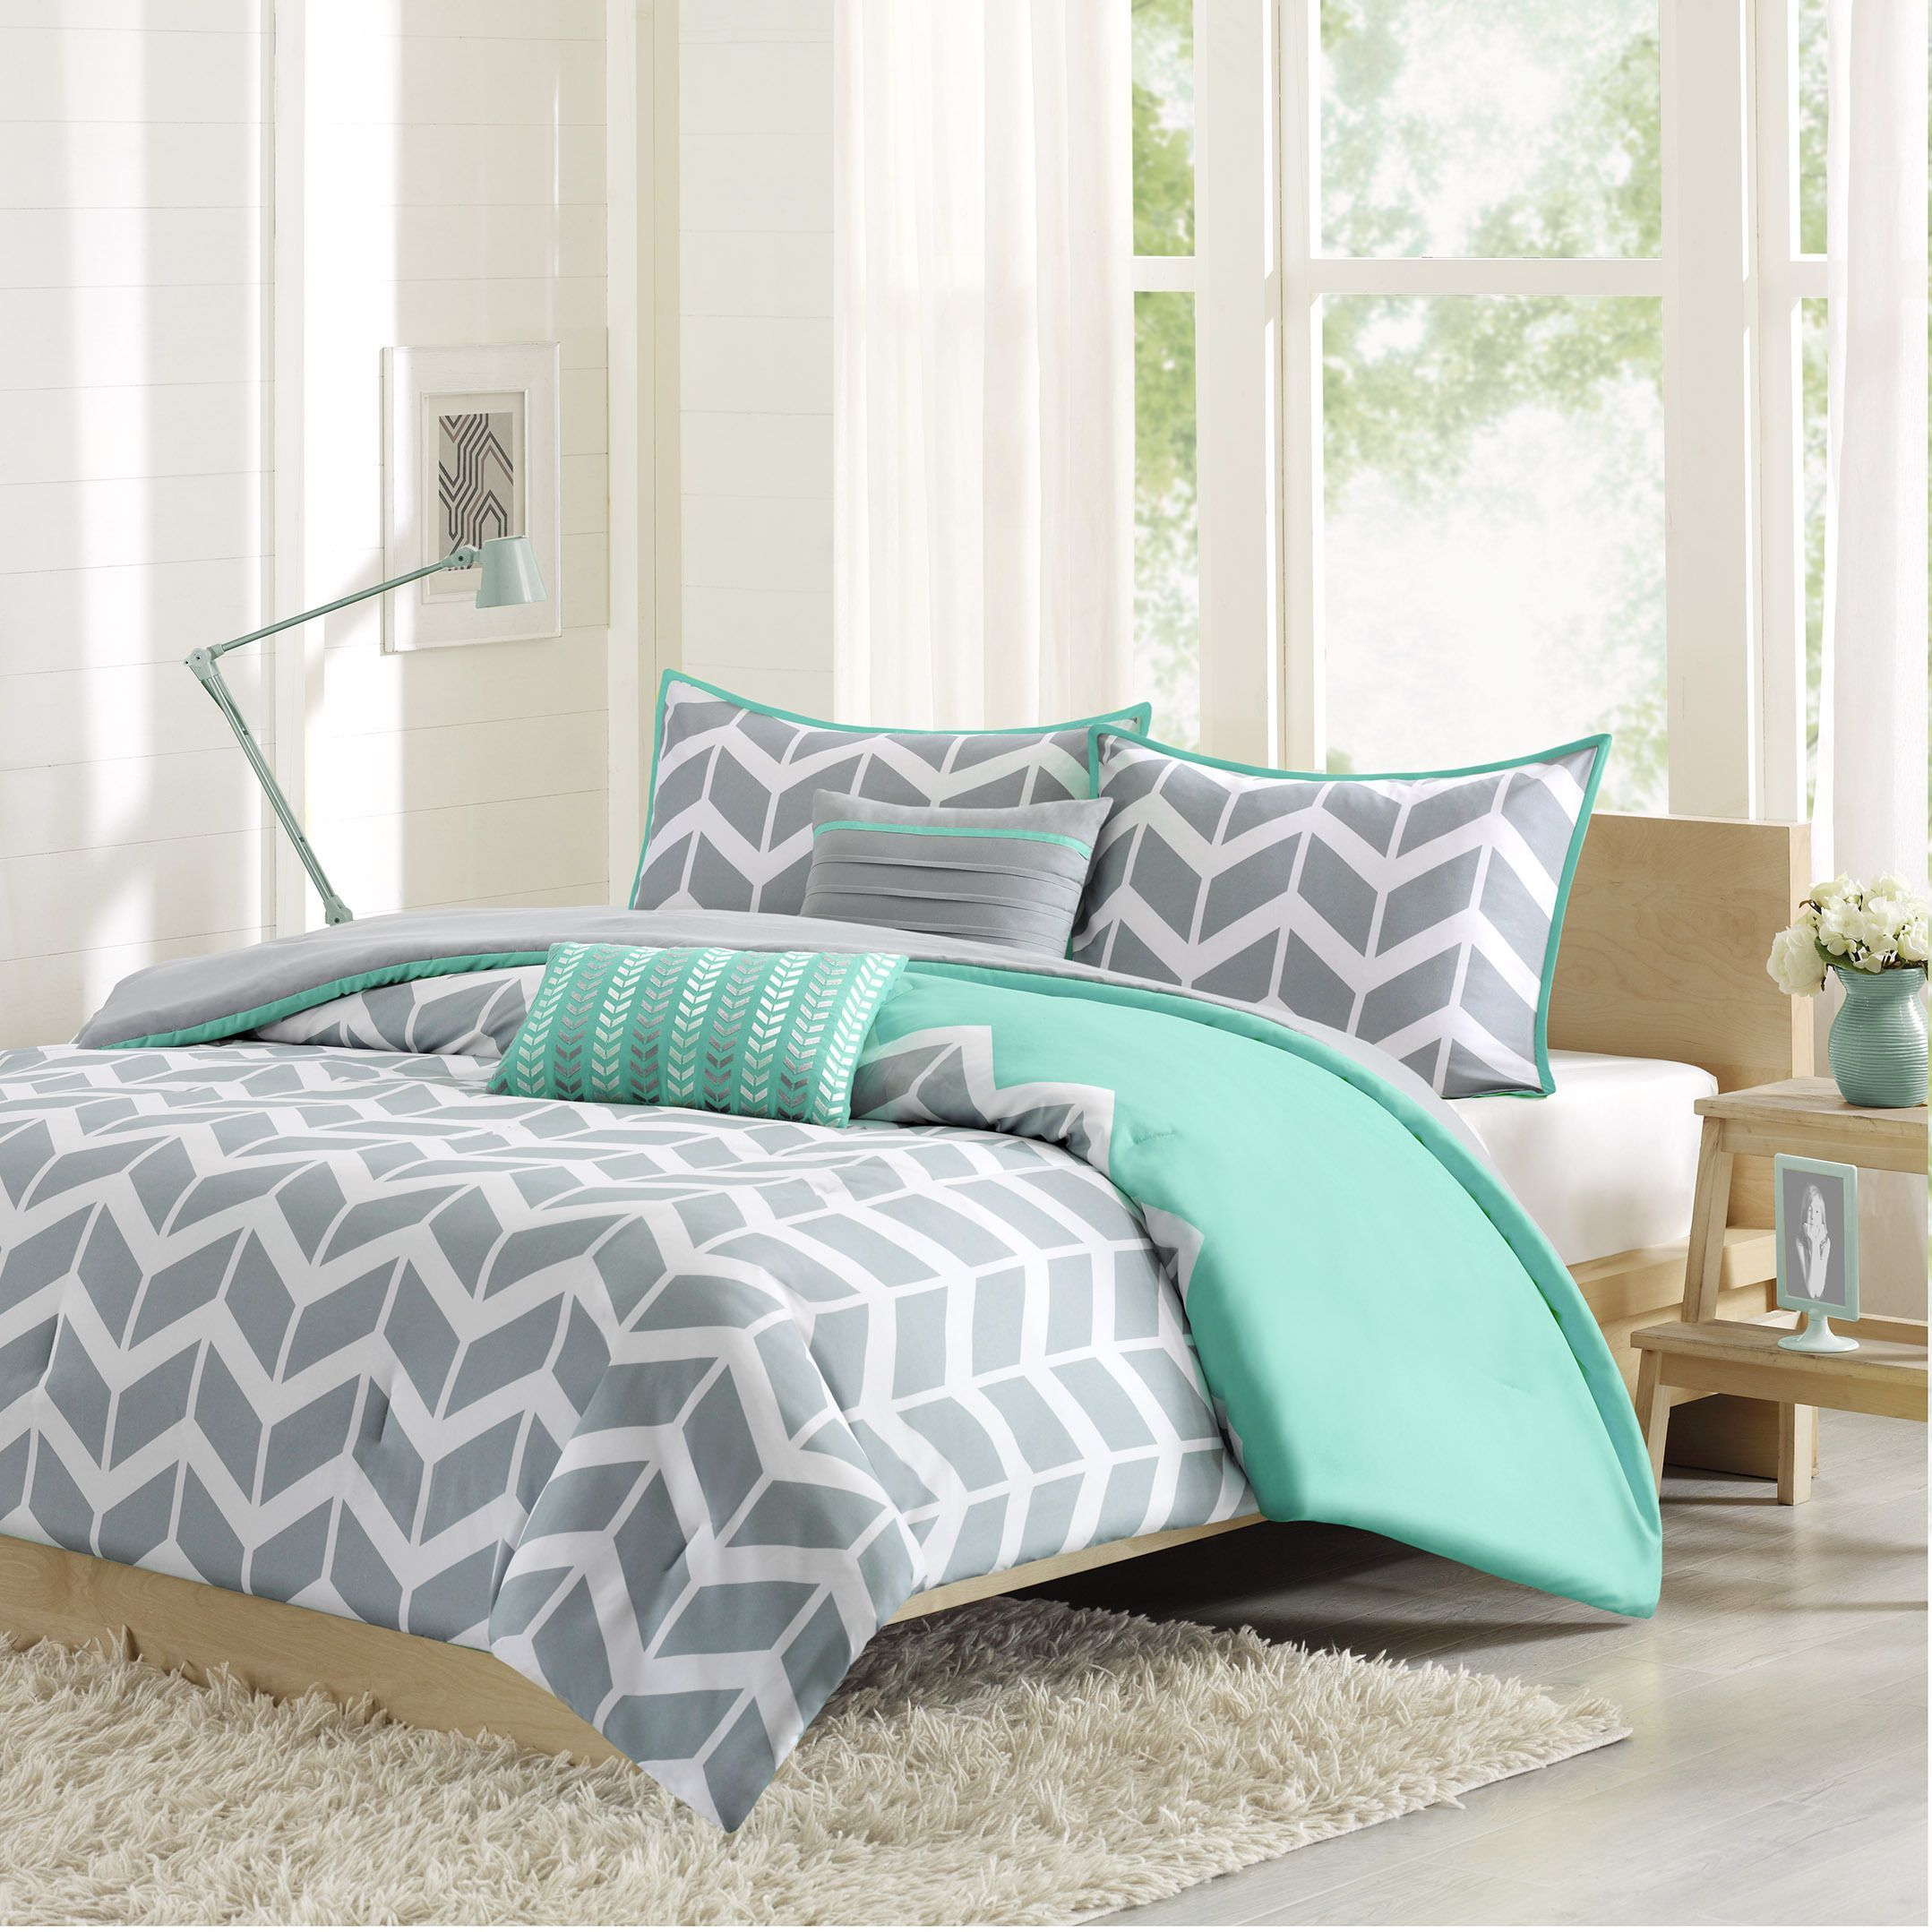 bed sets queen comforters twin king que cover and most double insert cheap black duvet bedroom walmart covers your size sheets bedding wicked with colorful comforter teal luxury to comfort